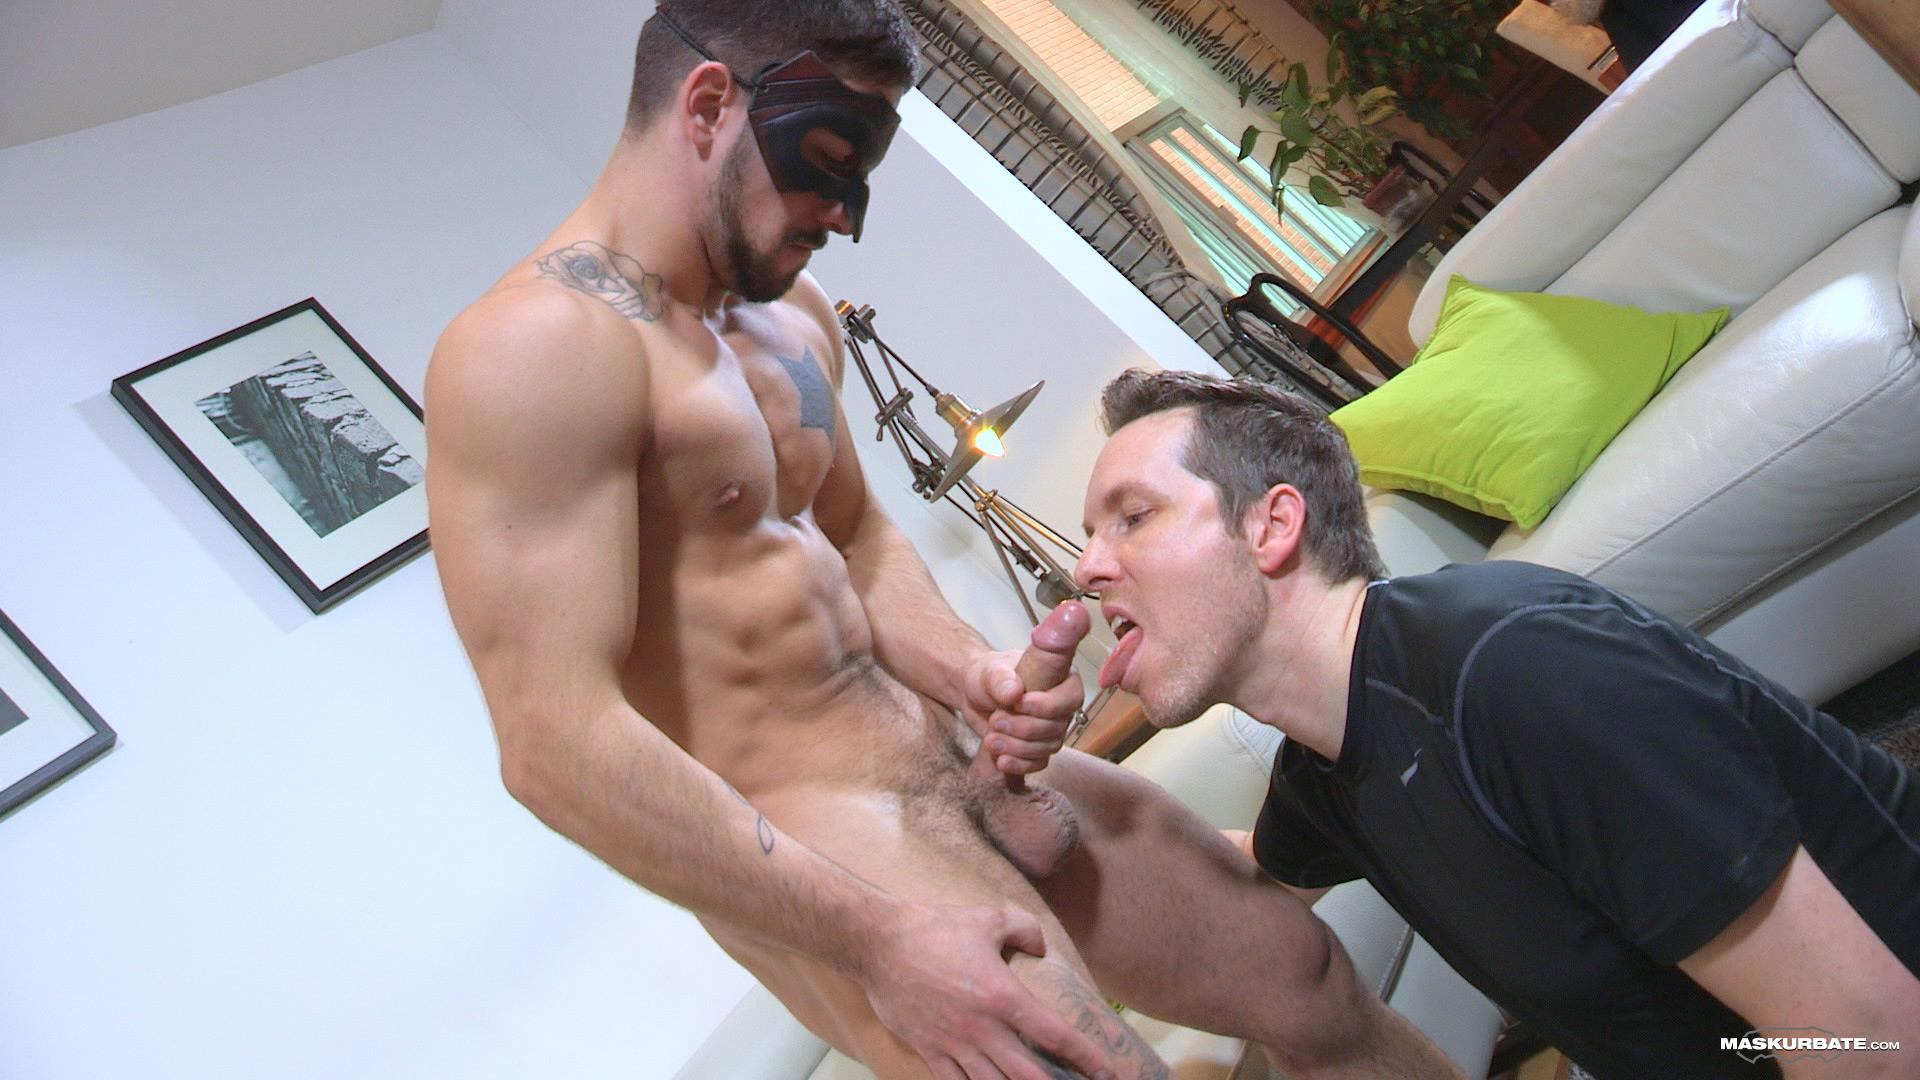 Maskurbate-Carl-Straight-Muscle-Jock-With-A-Big-Cock-Amateur-Gay-Porn-13 Straight Muscle Hunk Gets His First Blow Job From Another Guy